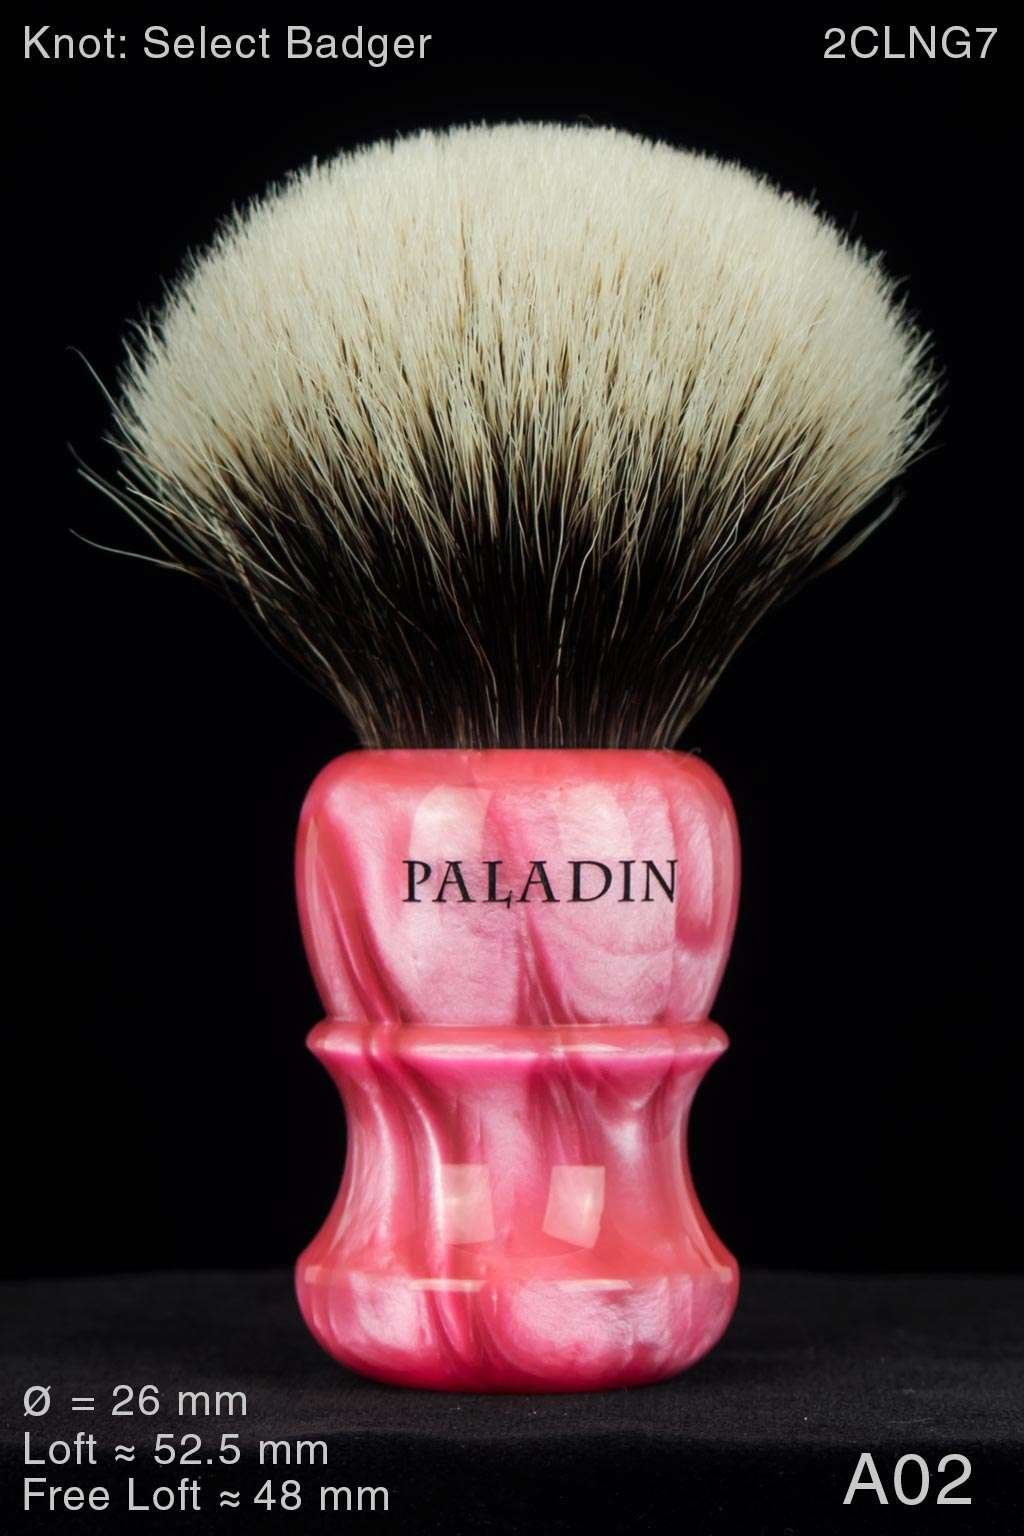 https://www.paladinshaving.com/products/barely-second-pk-47-26-mm-bazooka-a02-auction